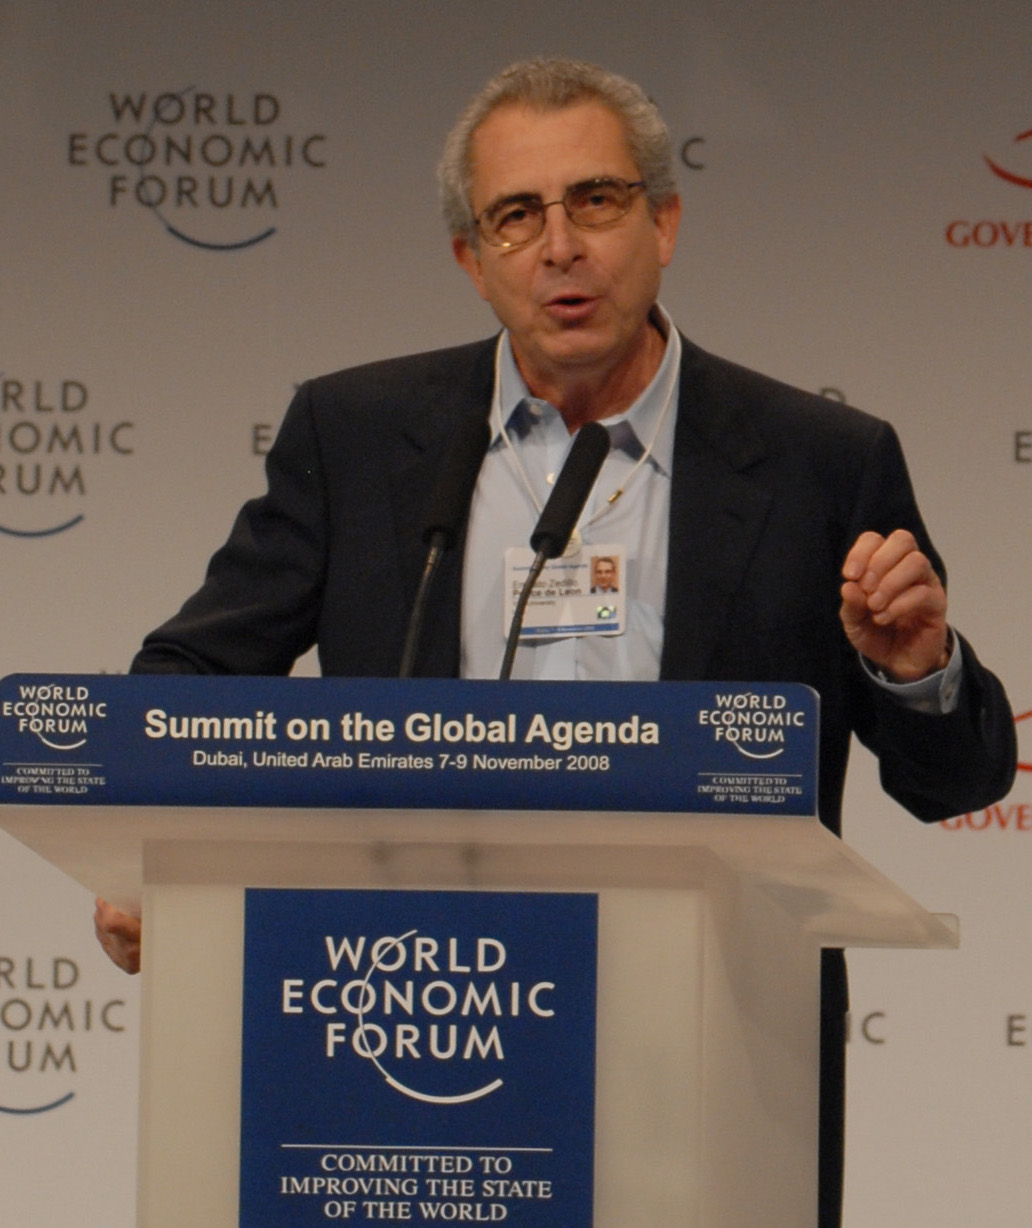 File:Ernesto Zedillo World Economic Forum (2008).jpg